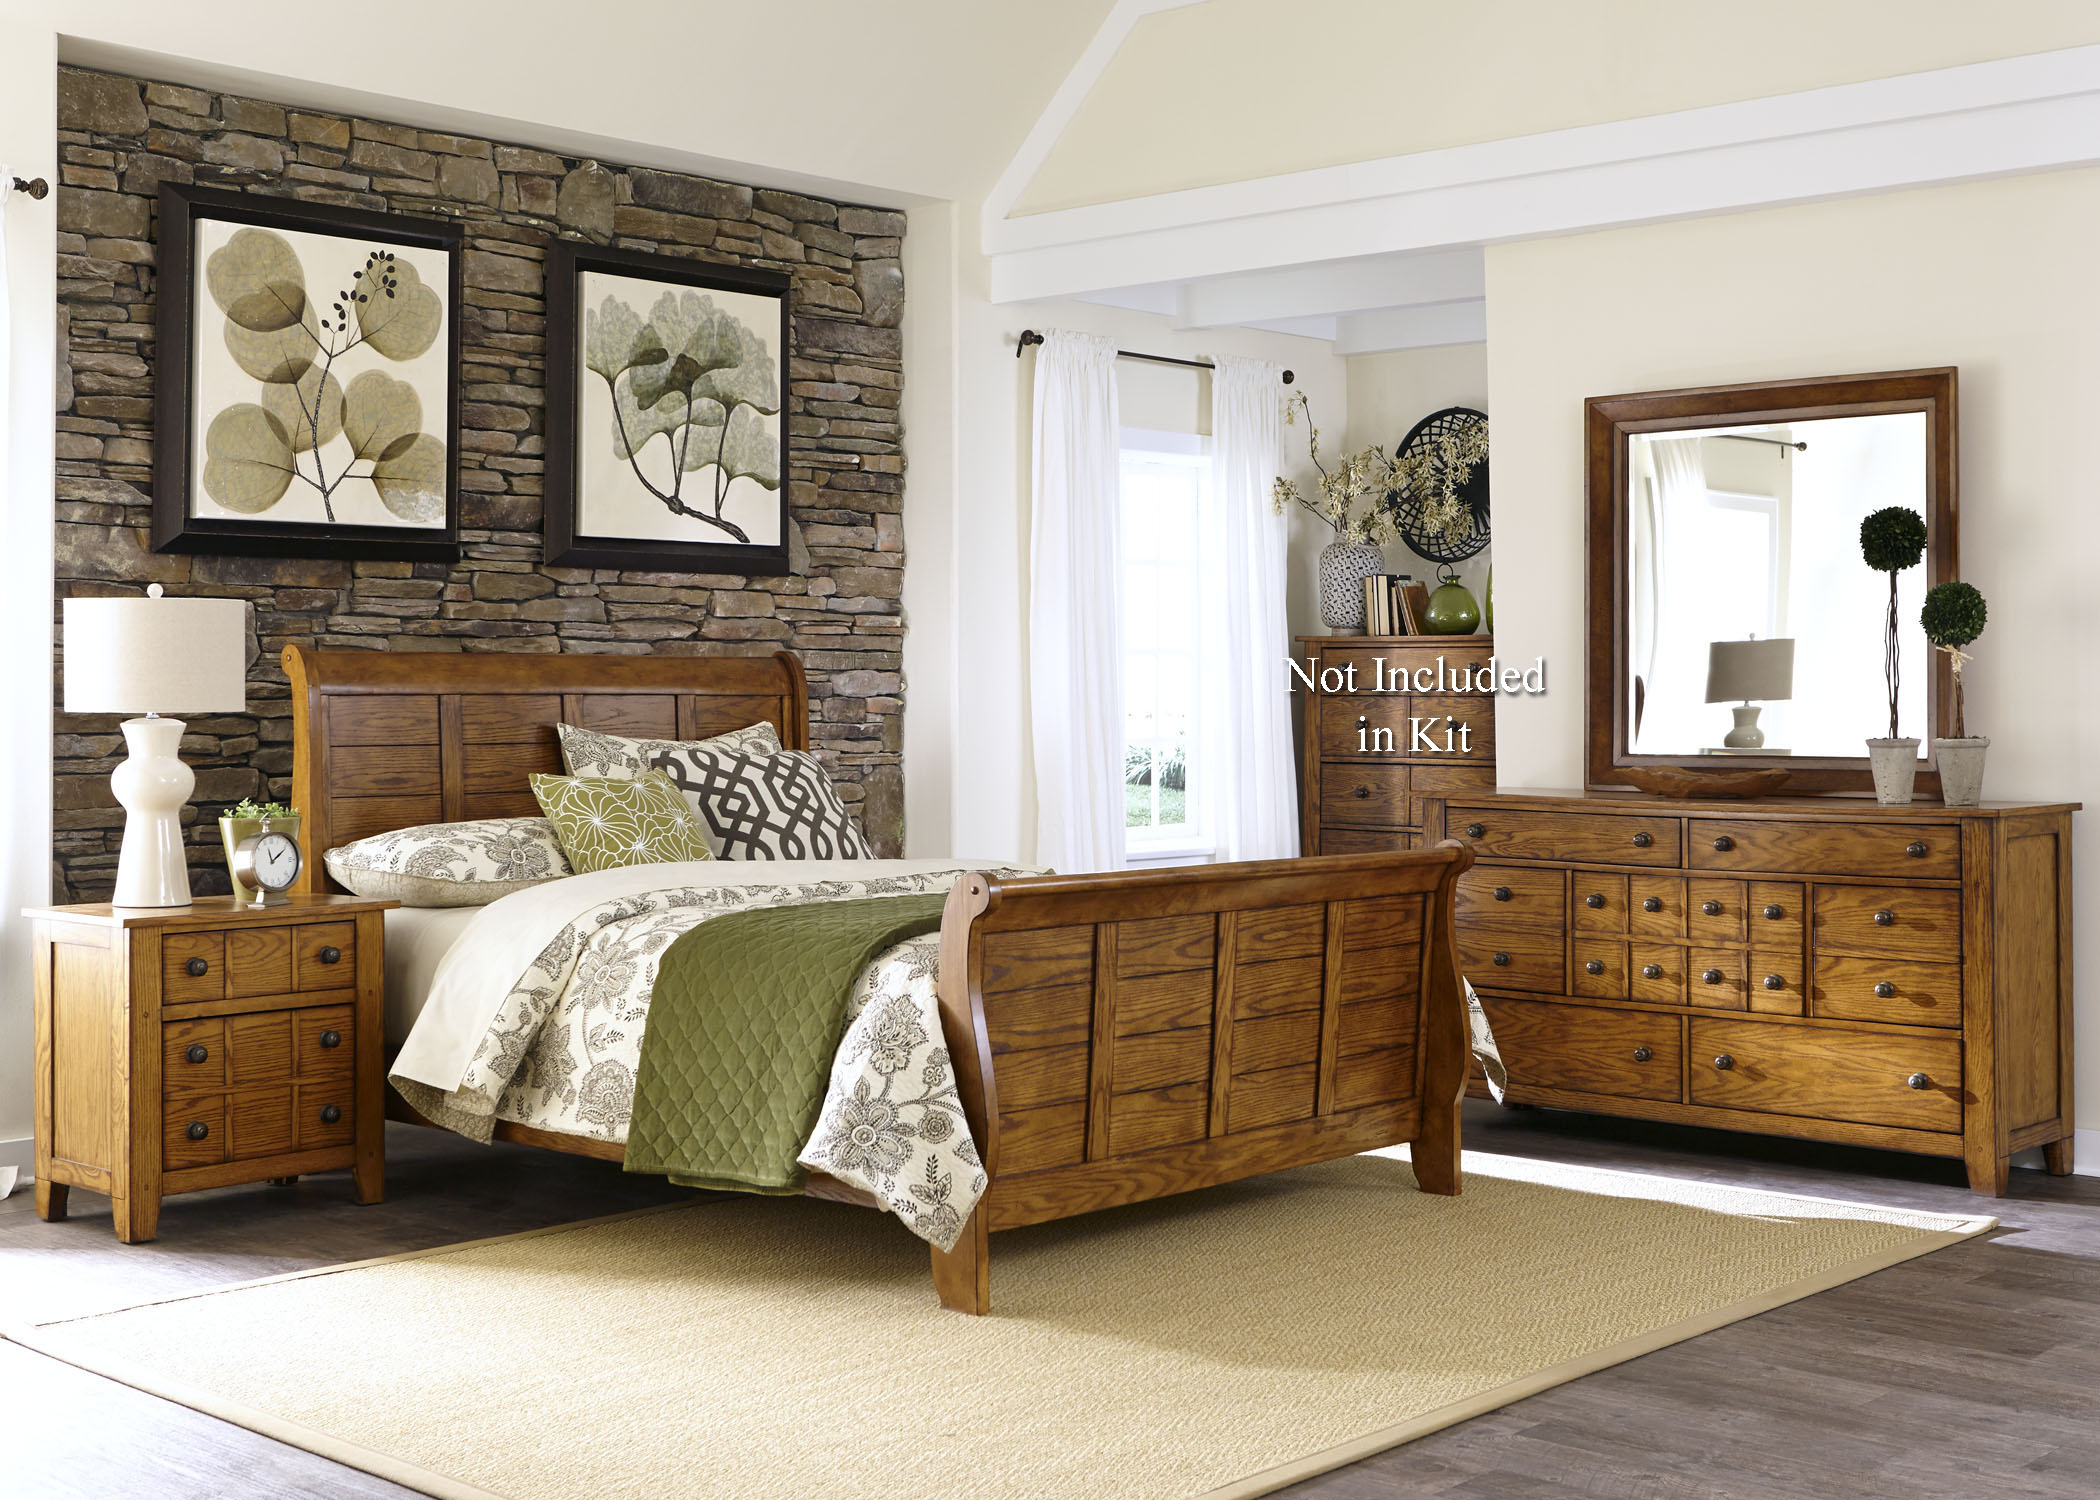 Grandpa's Cabin Queen Bedroom Group by Liberty Furniture at Pilgrim Furniture City